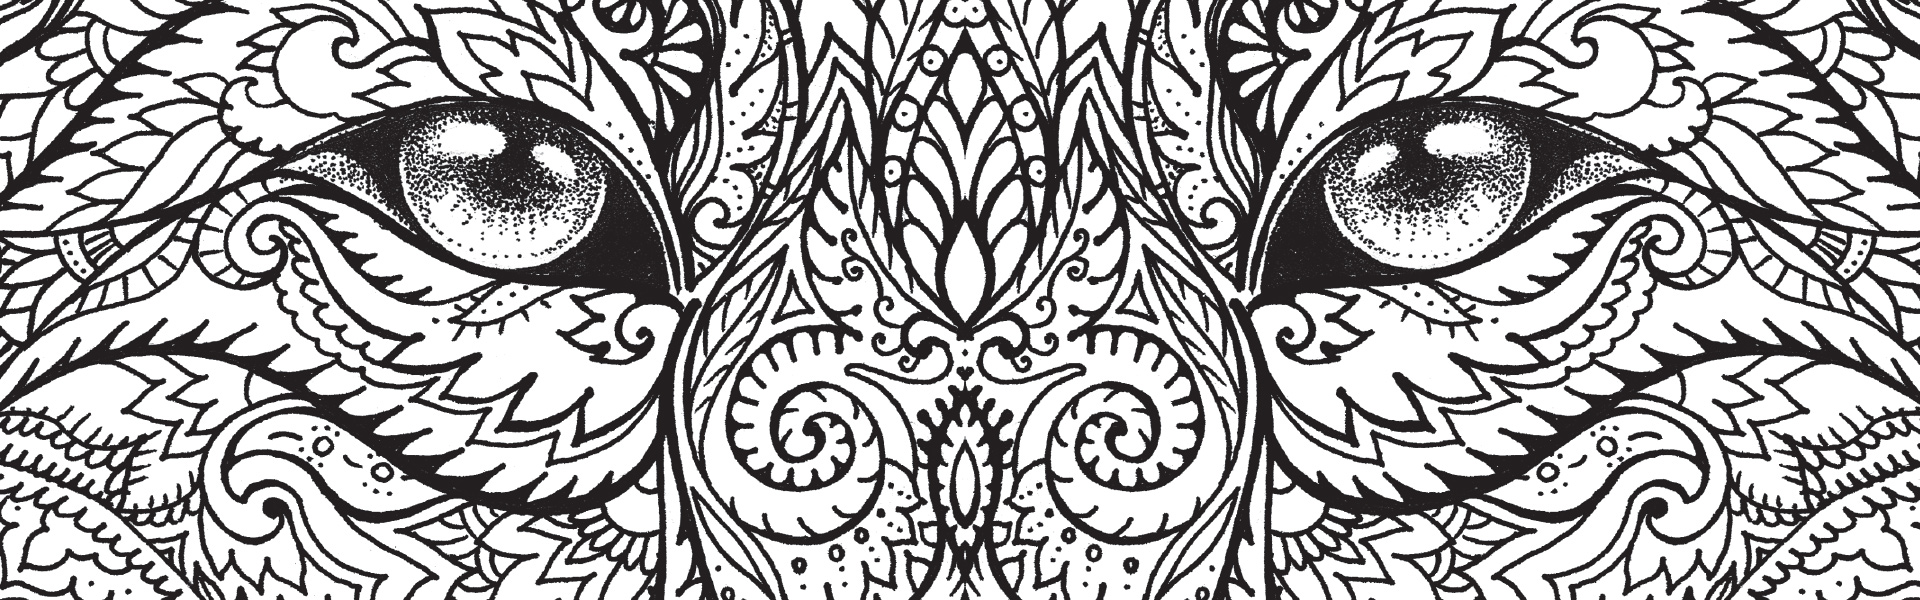 the macmillan jungle book colouring book free wolf pattern download - Colouring In Picture